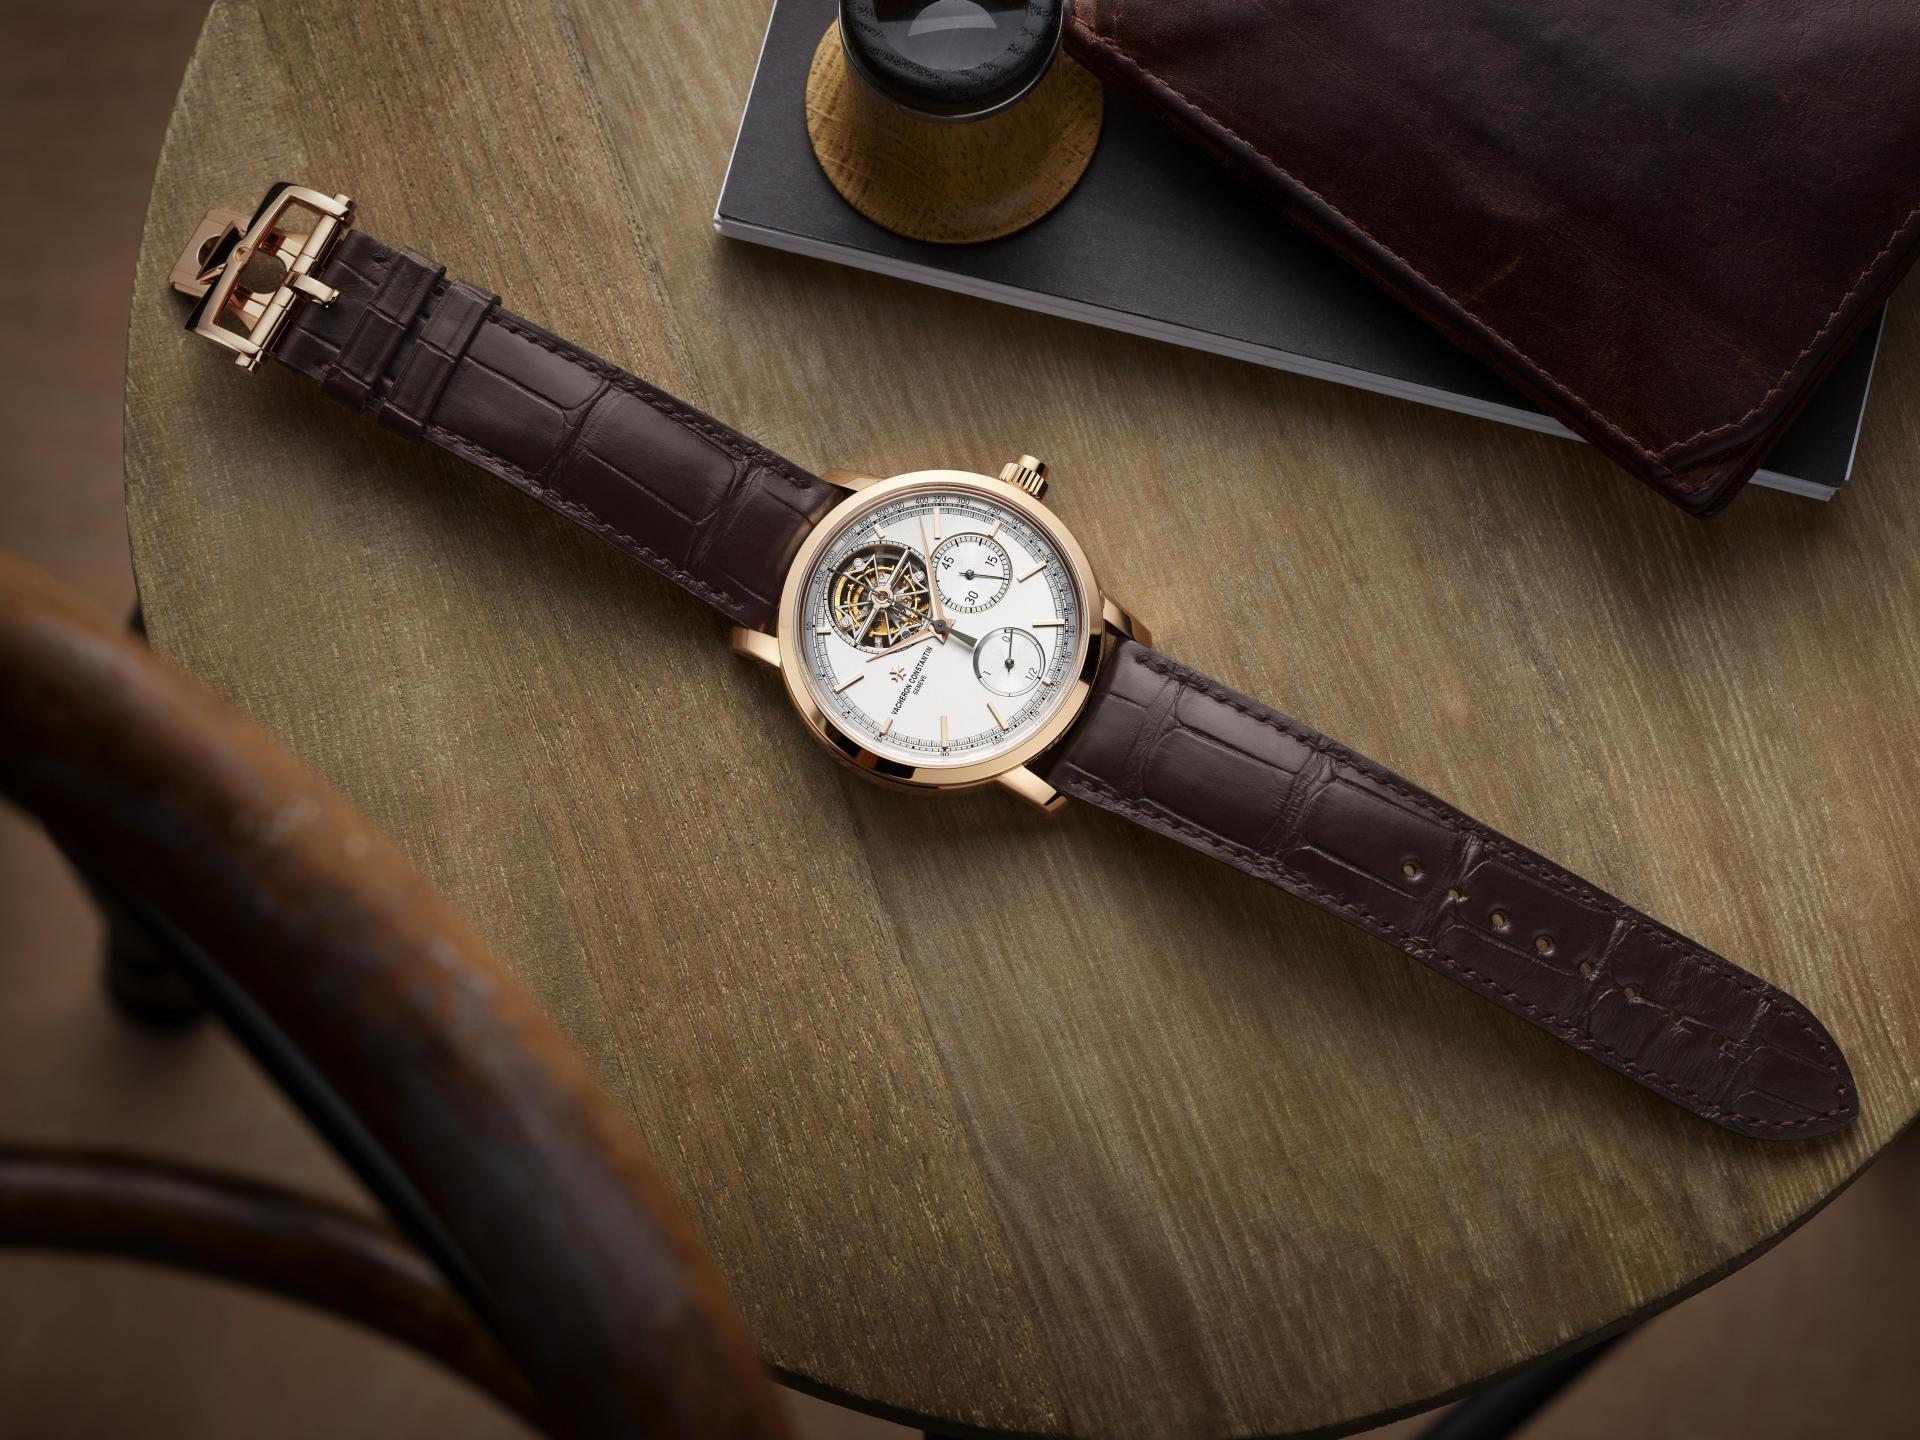 Vacheron Constantin Traditionnelle Tourbillon Chronograph watch